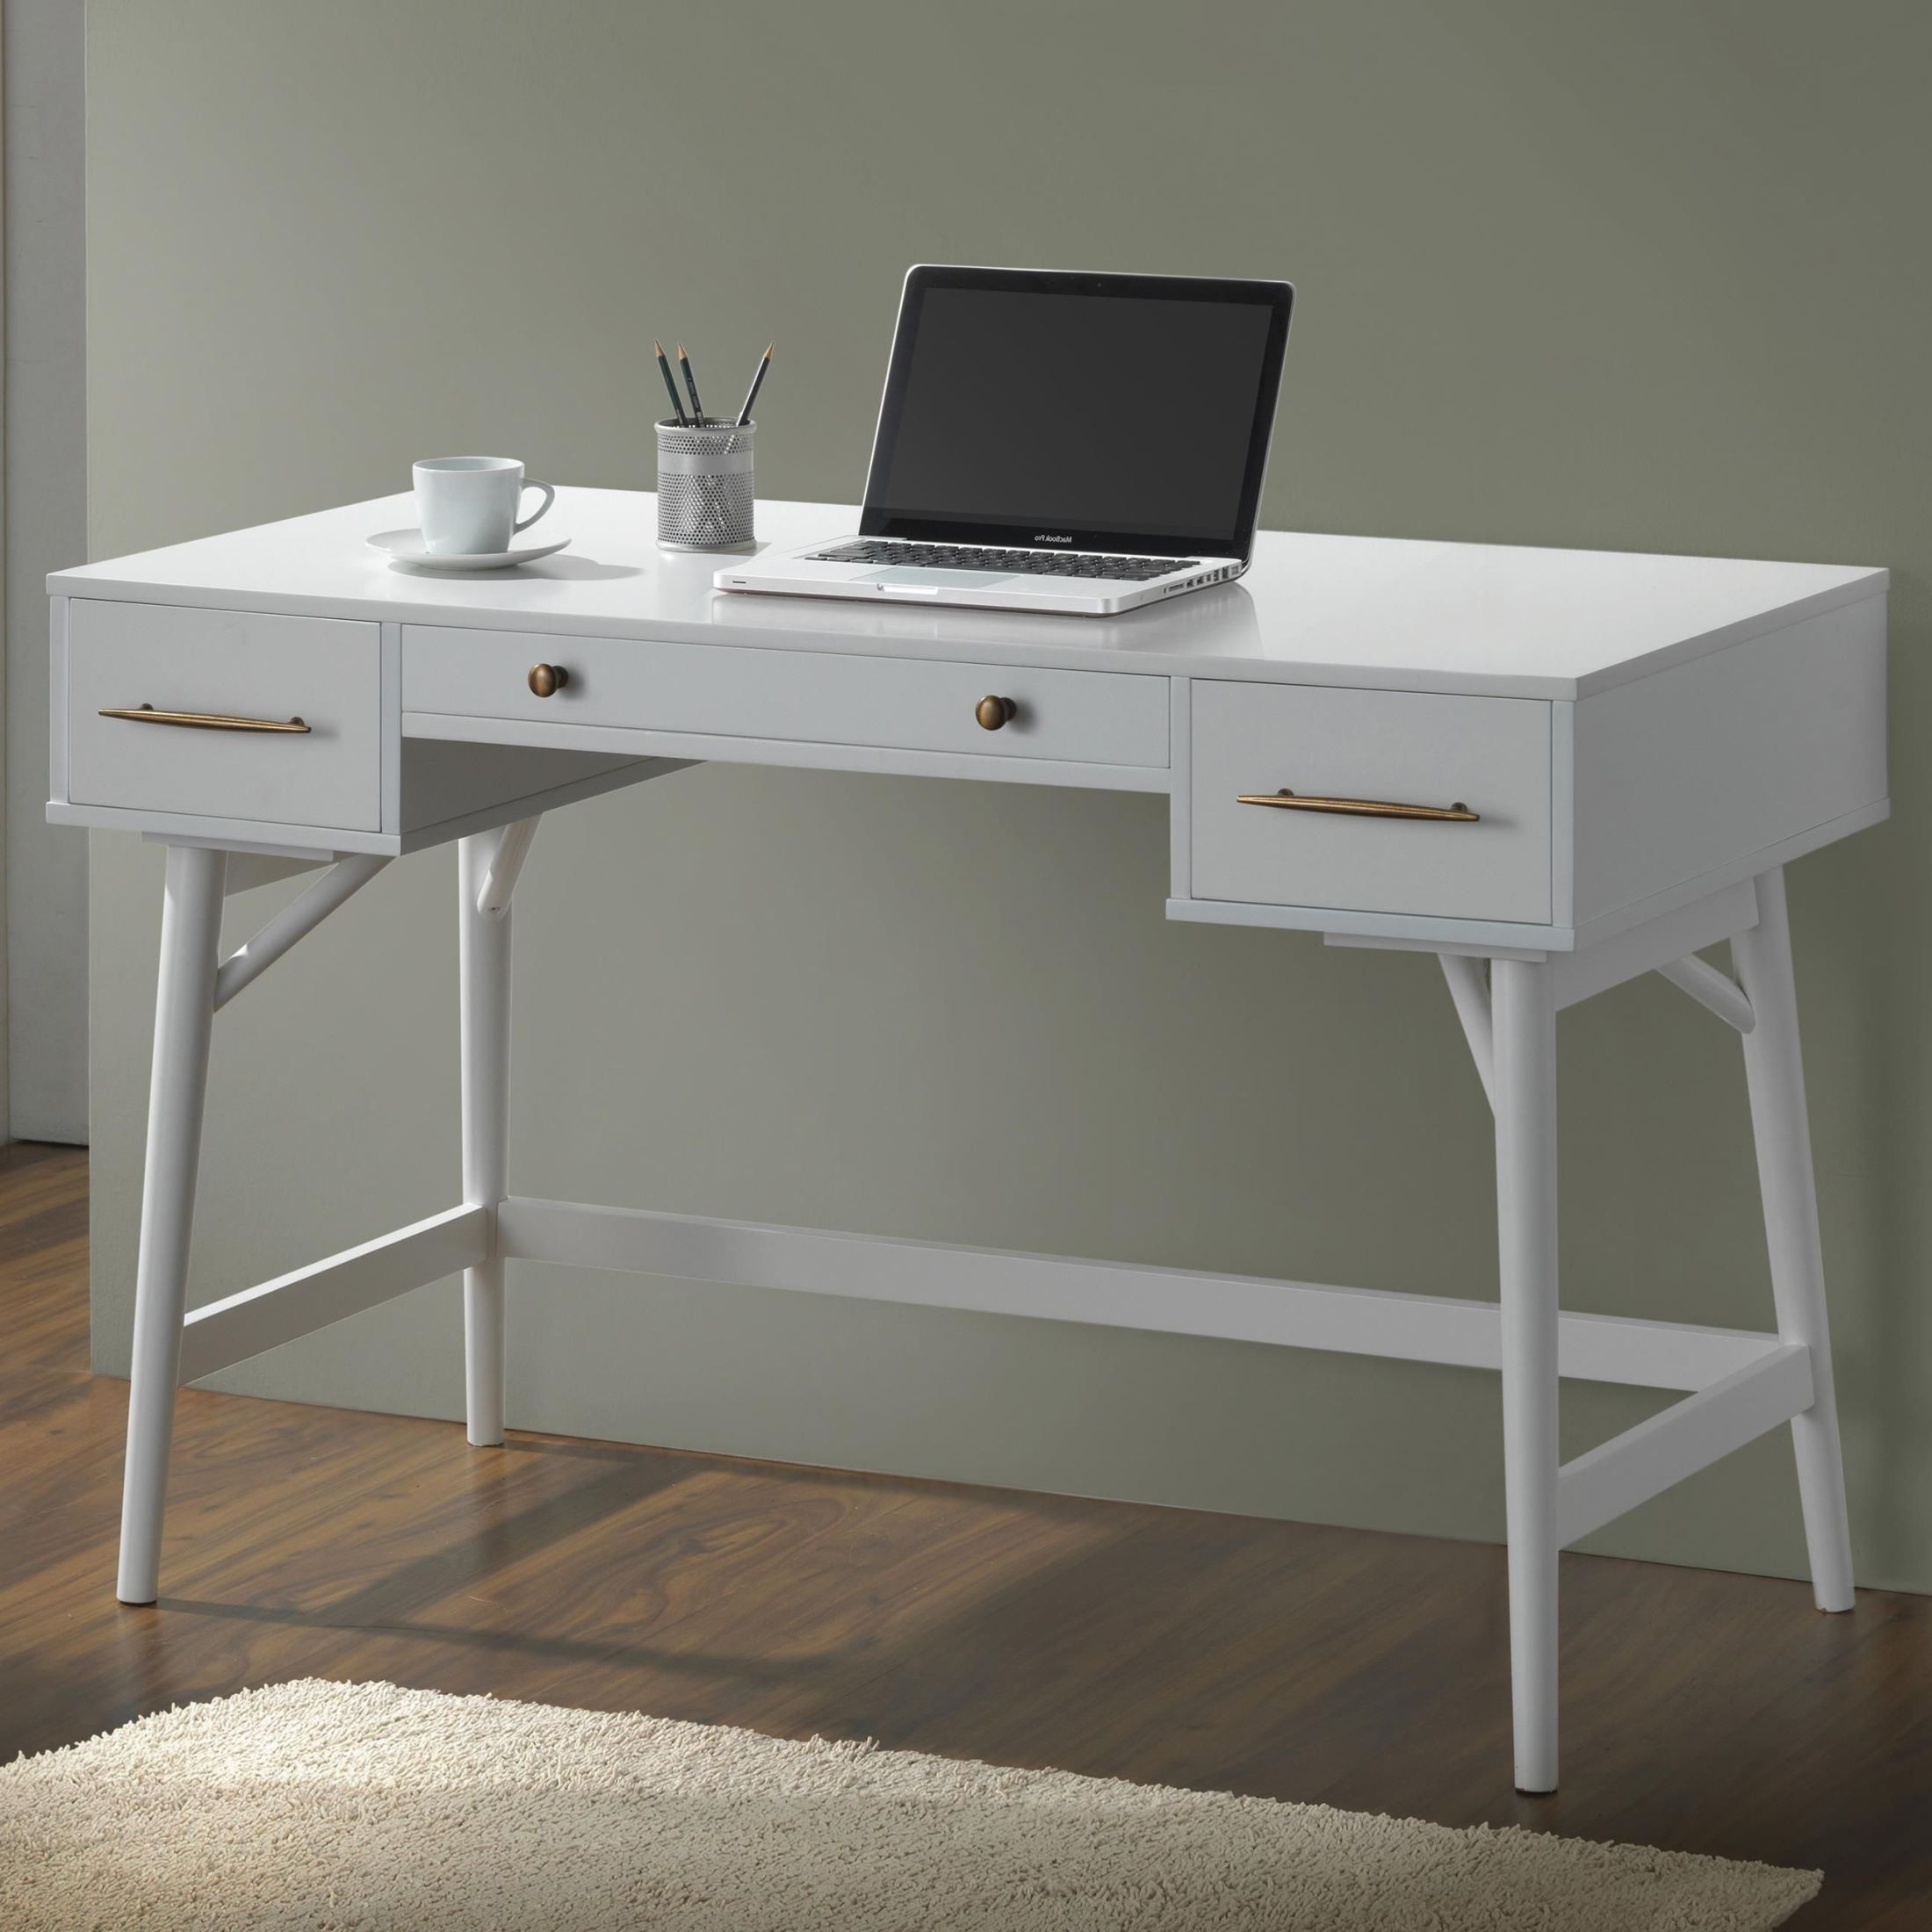 800745 White Writing Desk from Coaster 800745  Coleman